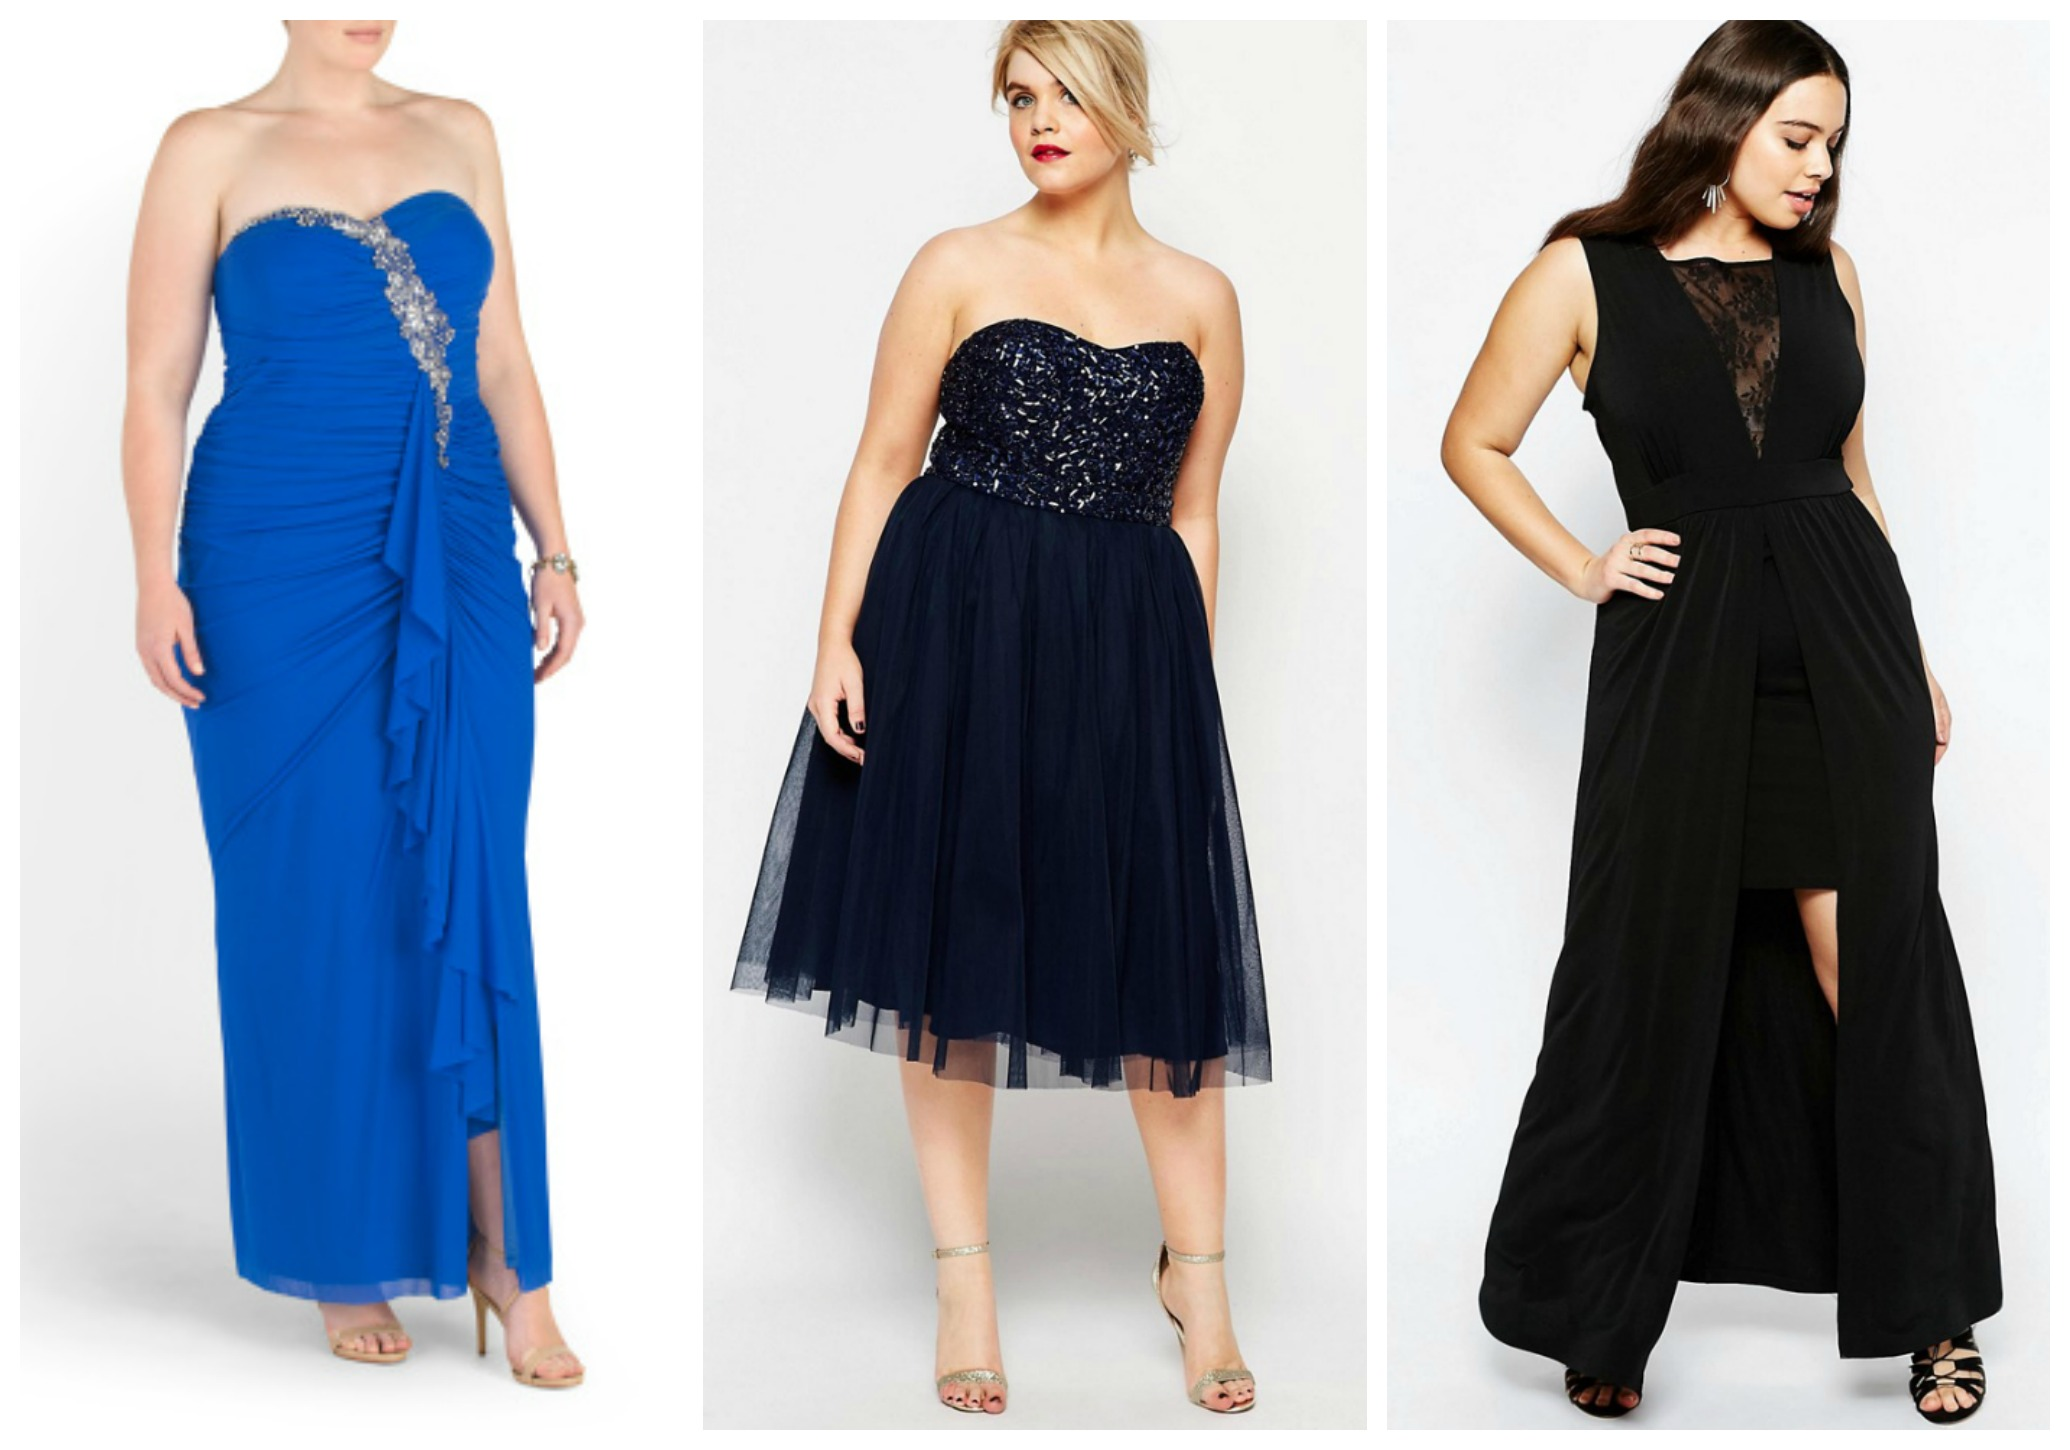 Plus Size Formal Dresses Under 100 - Nini Dress